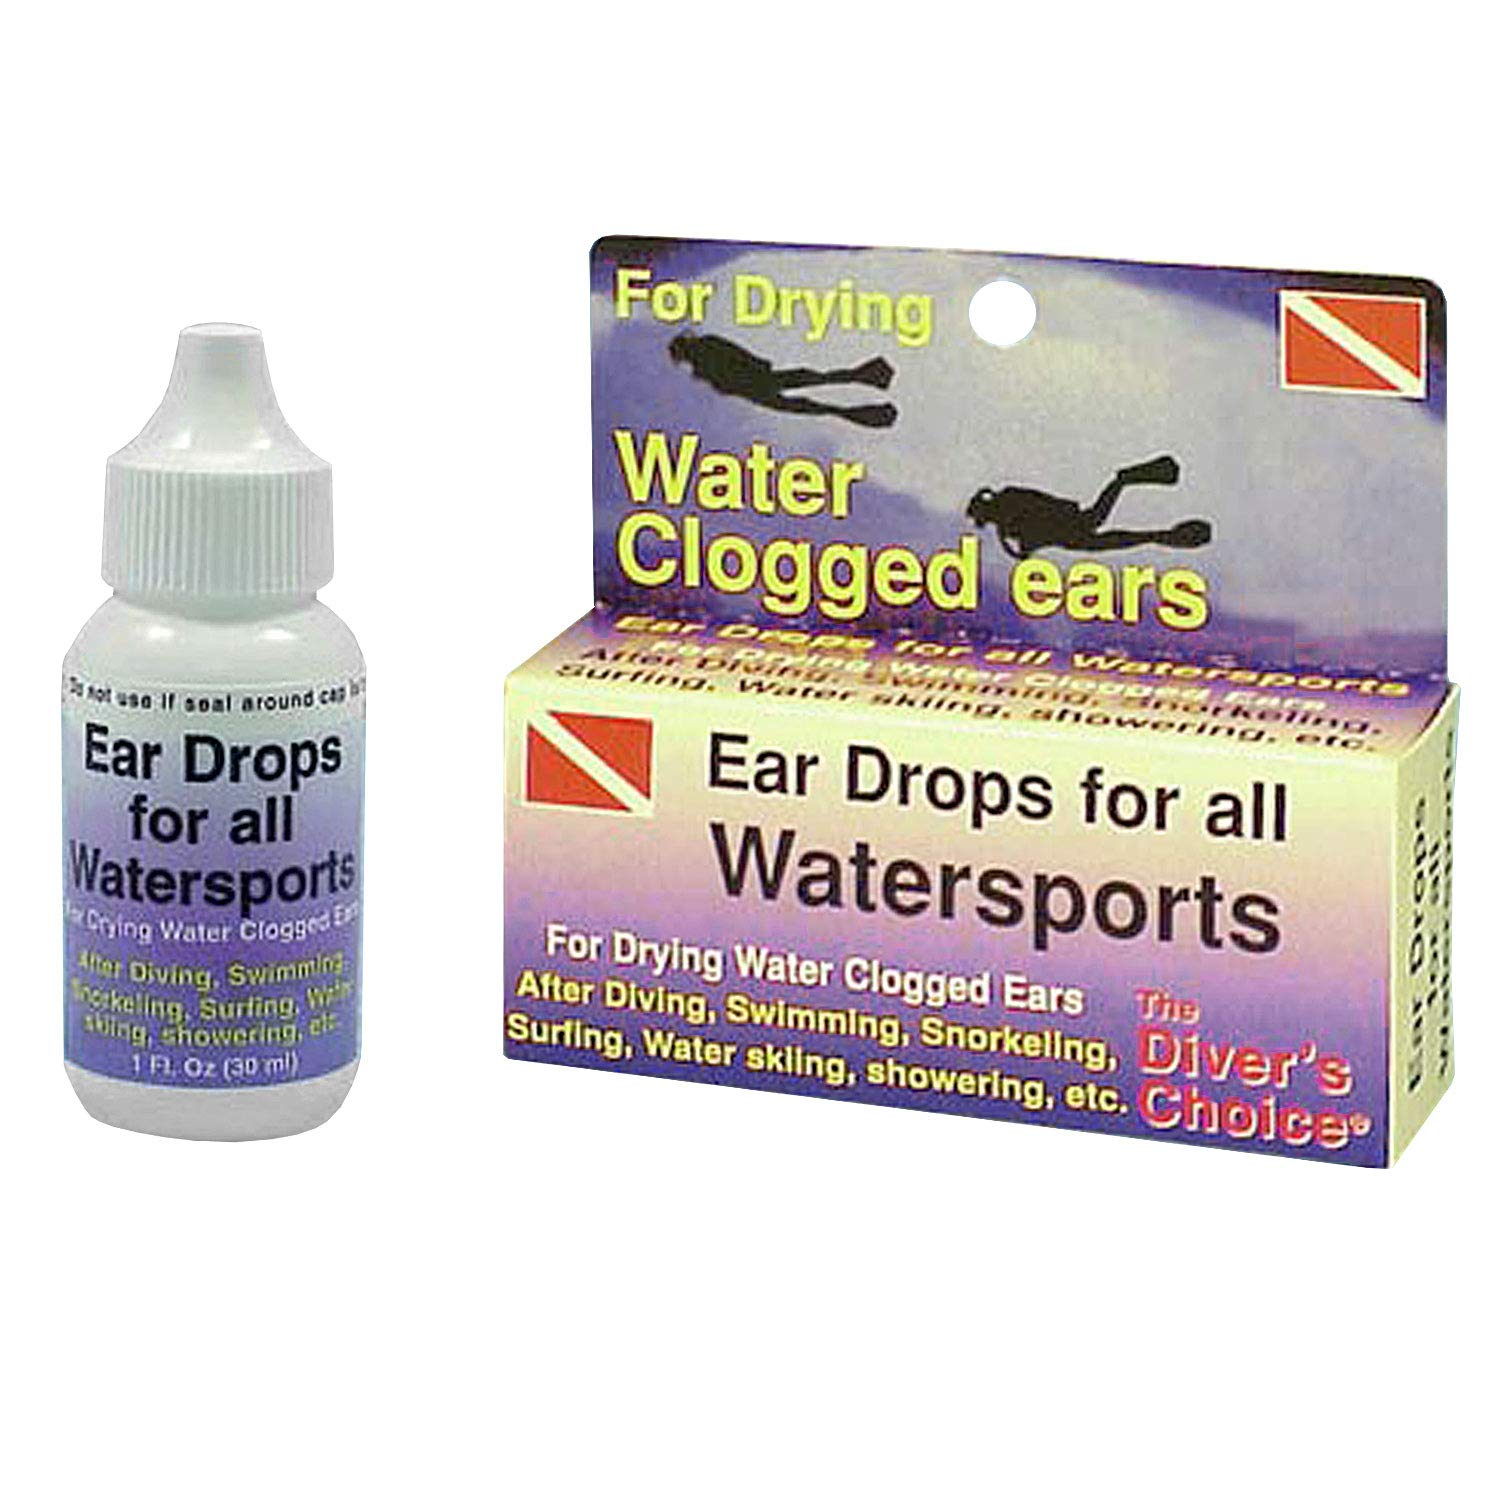 Trident Ear Drops for Scuba Diving, Swimming, Snorkeling, and All Watersports Swim Swimmers Ear Snorkel Diving Dive Divers Boating Sailing Kayak Canoe